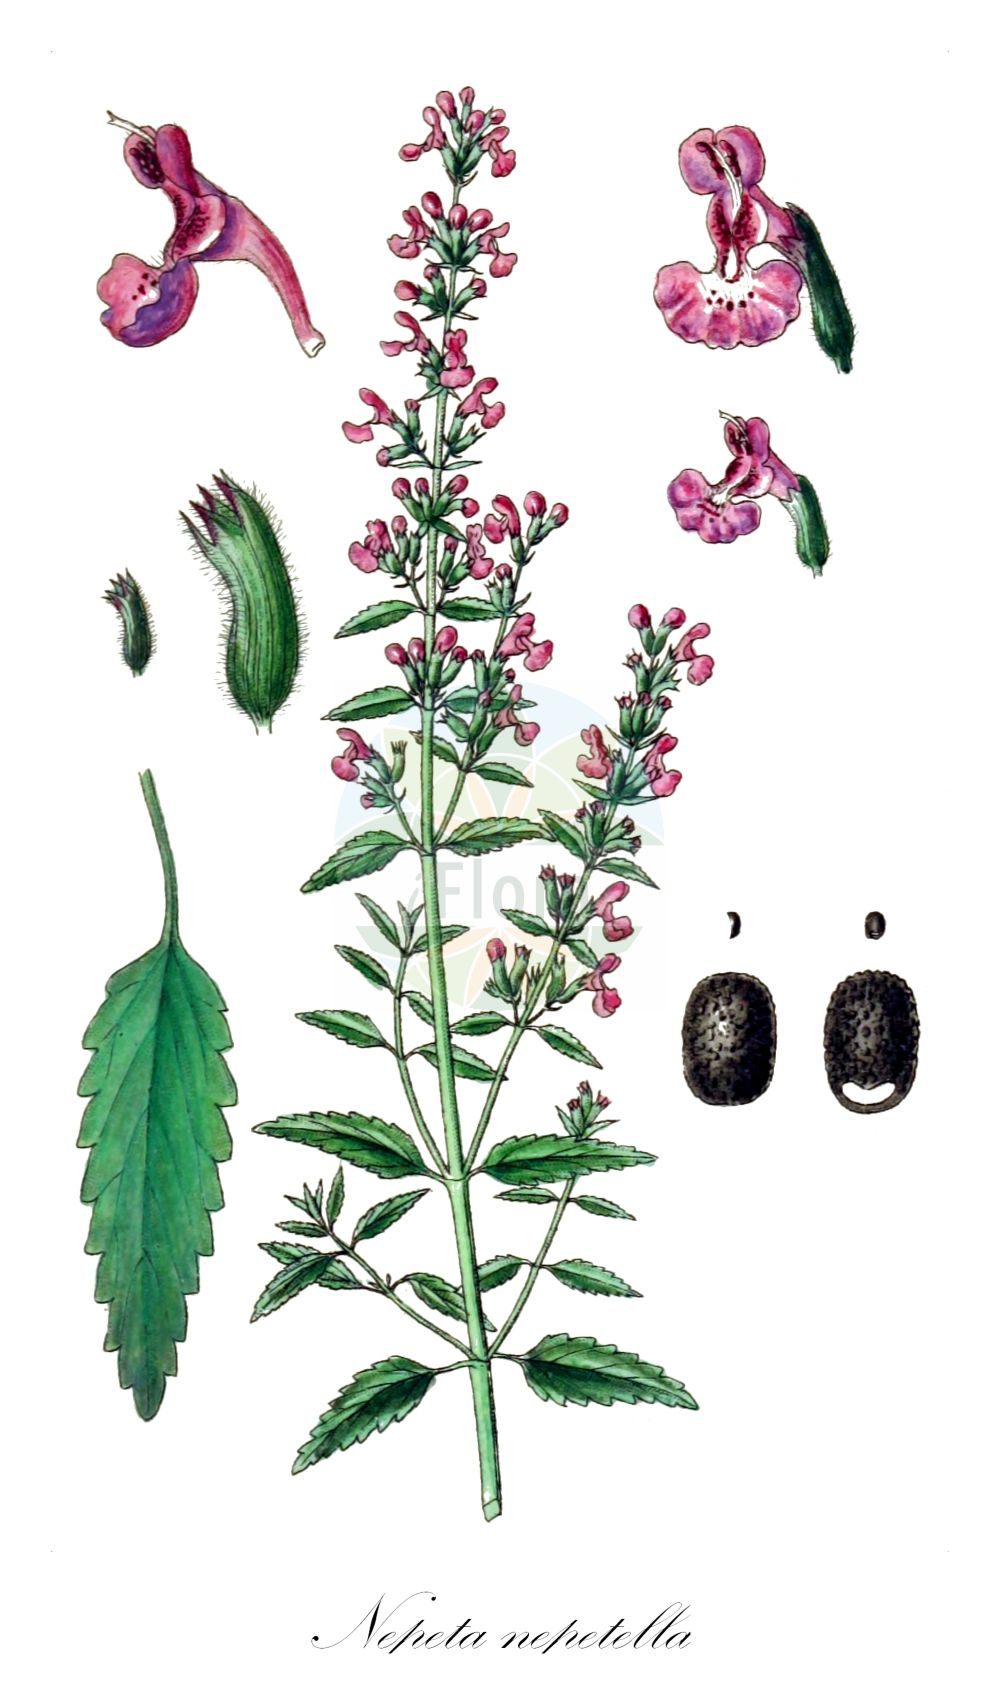 Historische Abbildung von Nepeta nepetella. Das Bild zeigt Blatt, Bluete, Frucht und Same. ---- Historical Drawing of Nepeta nepetella.The image is showing leaf, flower, fruit and seed.(Nepeta nepetella,Cataria nepetella,Glechoma nepetella,,Nepeta,Katzenminze,Catnip,Lamiaceae,Lippenbluetengewaechse;Lippenbluetler,Nettle family,Blatt,Bluete,Frucht,Same,leaf,flower,fruit,seed,Sturm (1796f))